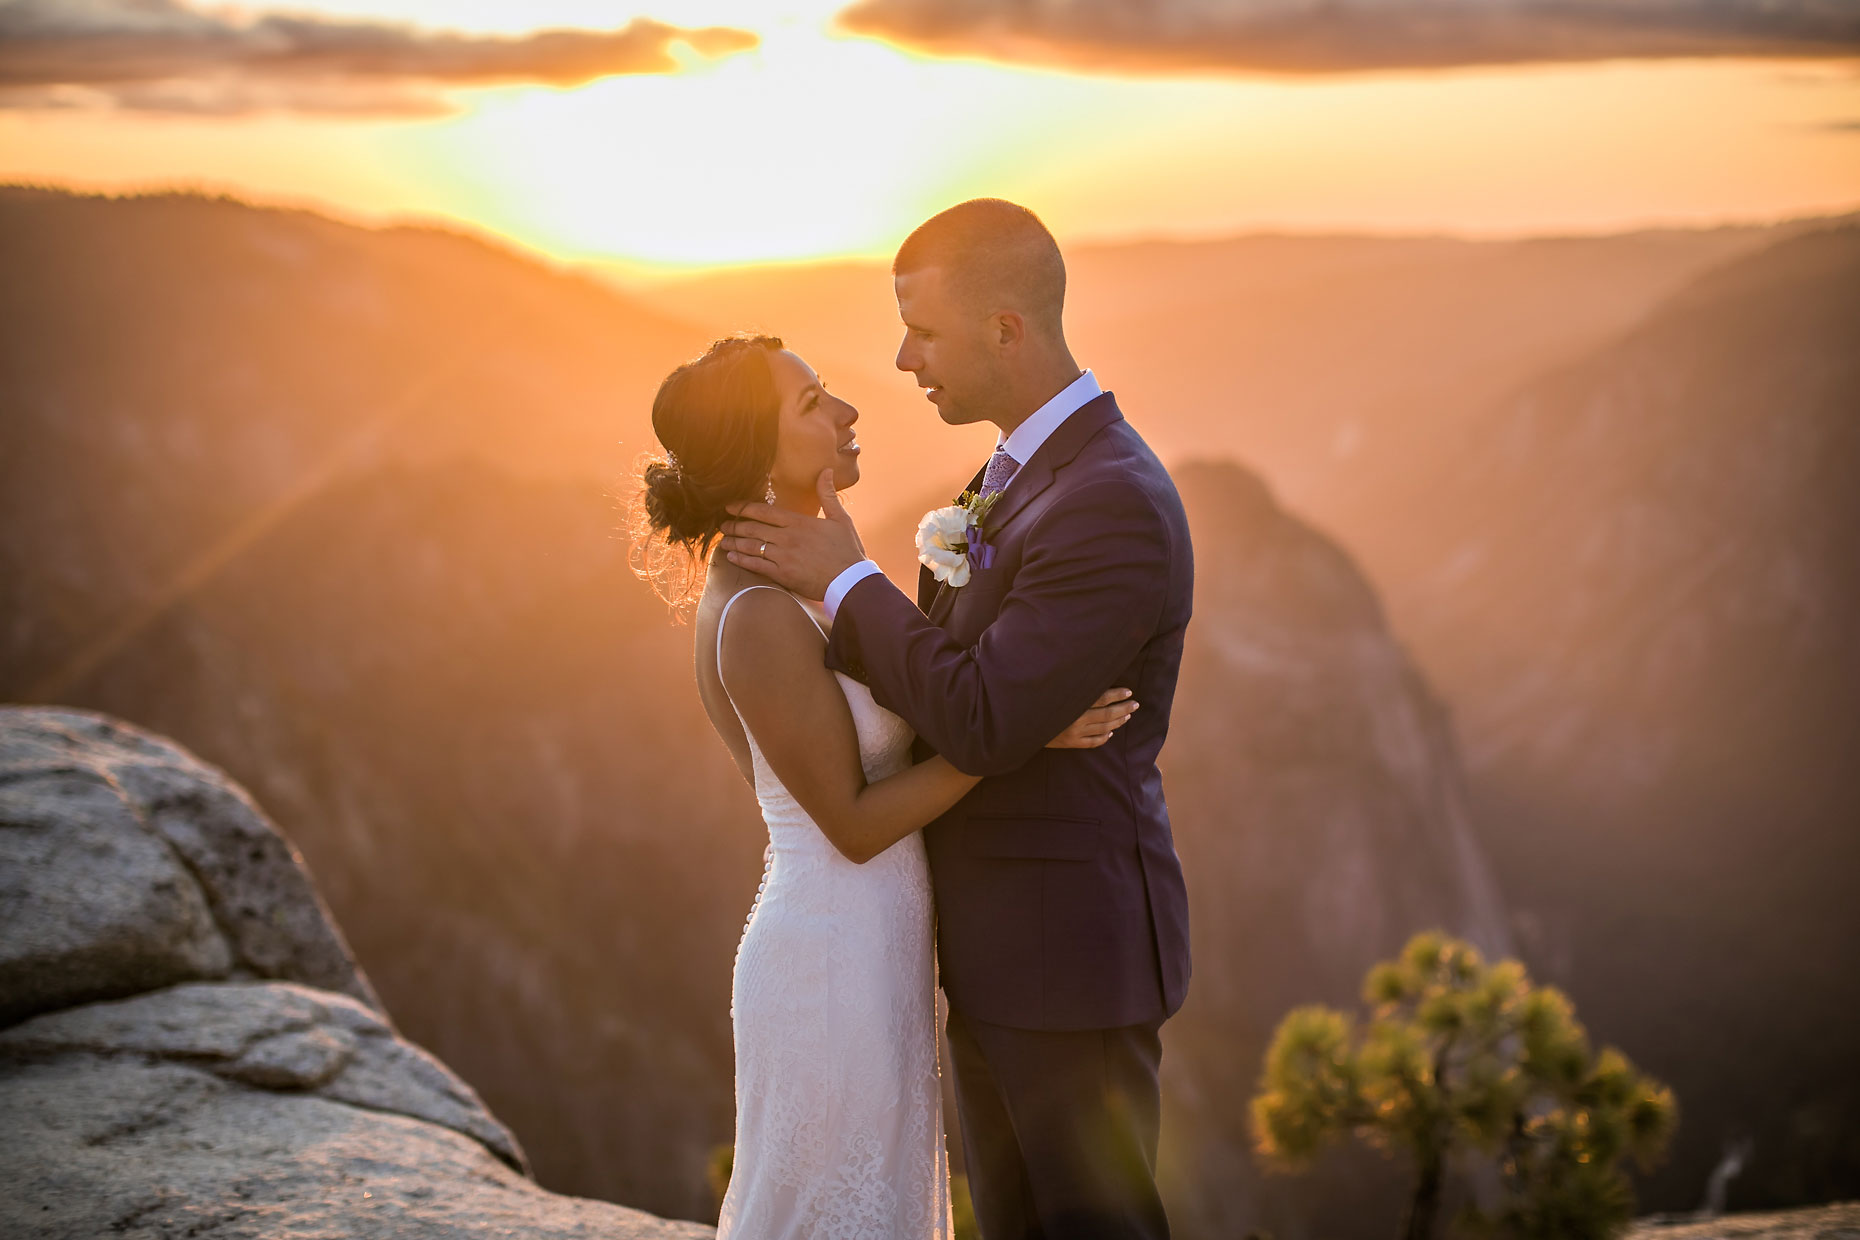 Adventure elopement photographer at Taft Point in Yosemite.